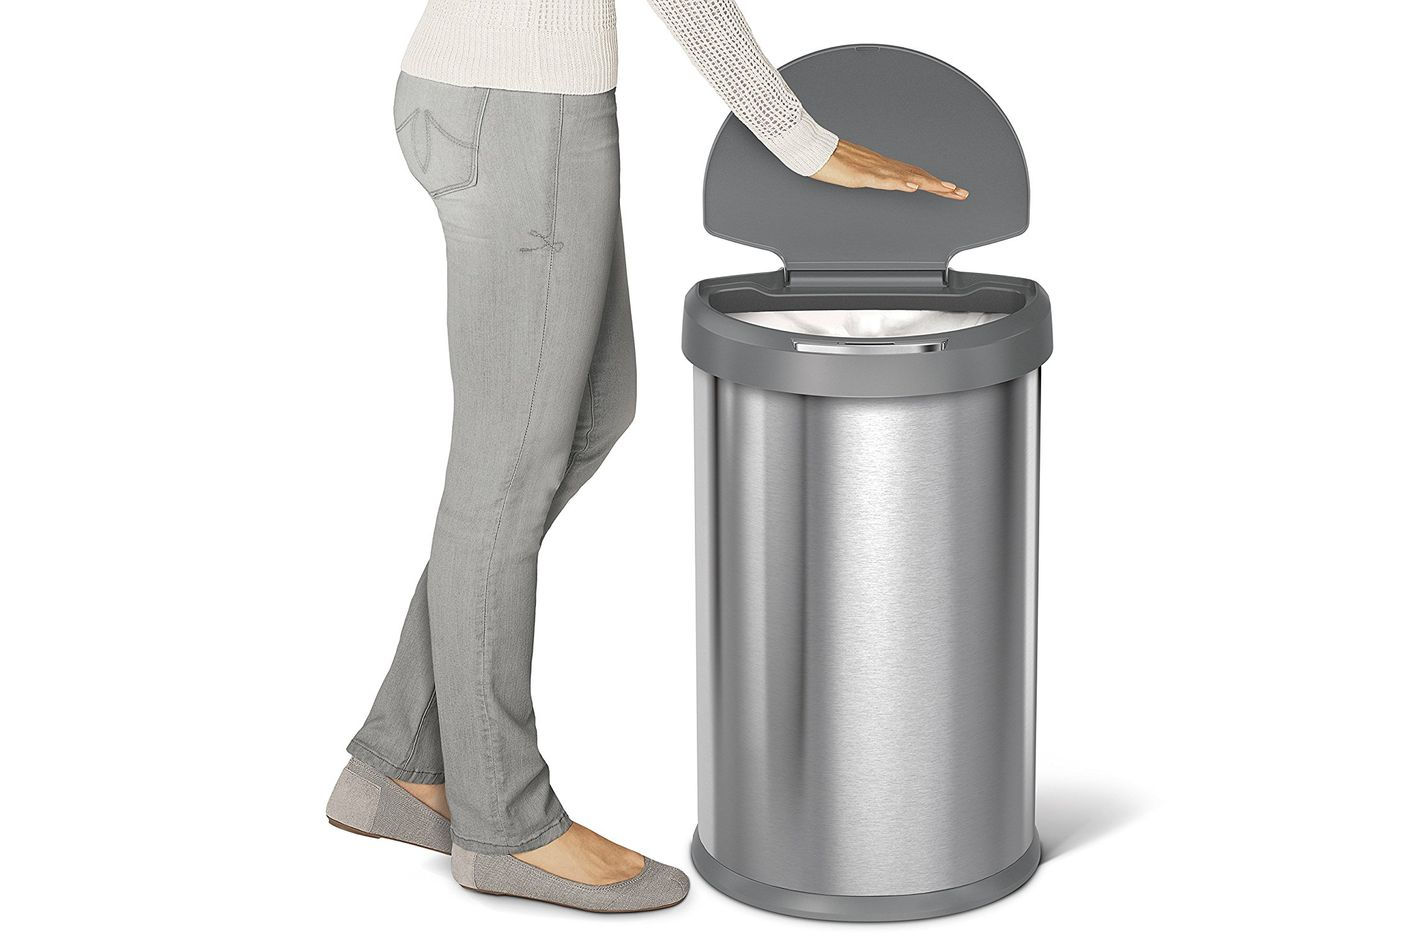 Best trash cans on amazon according to reviewers for Commercial bathroom trash cans